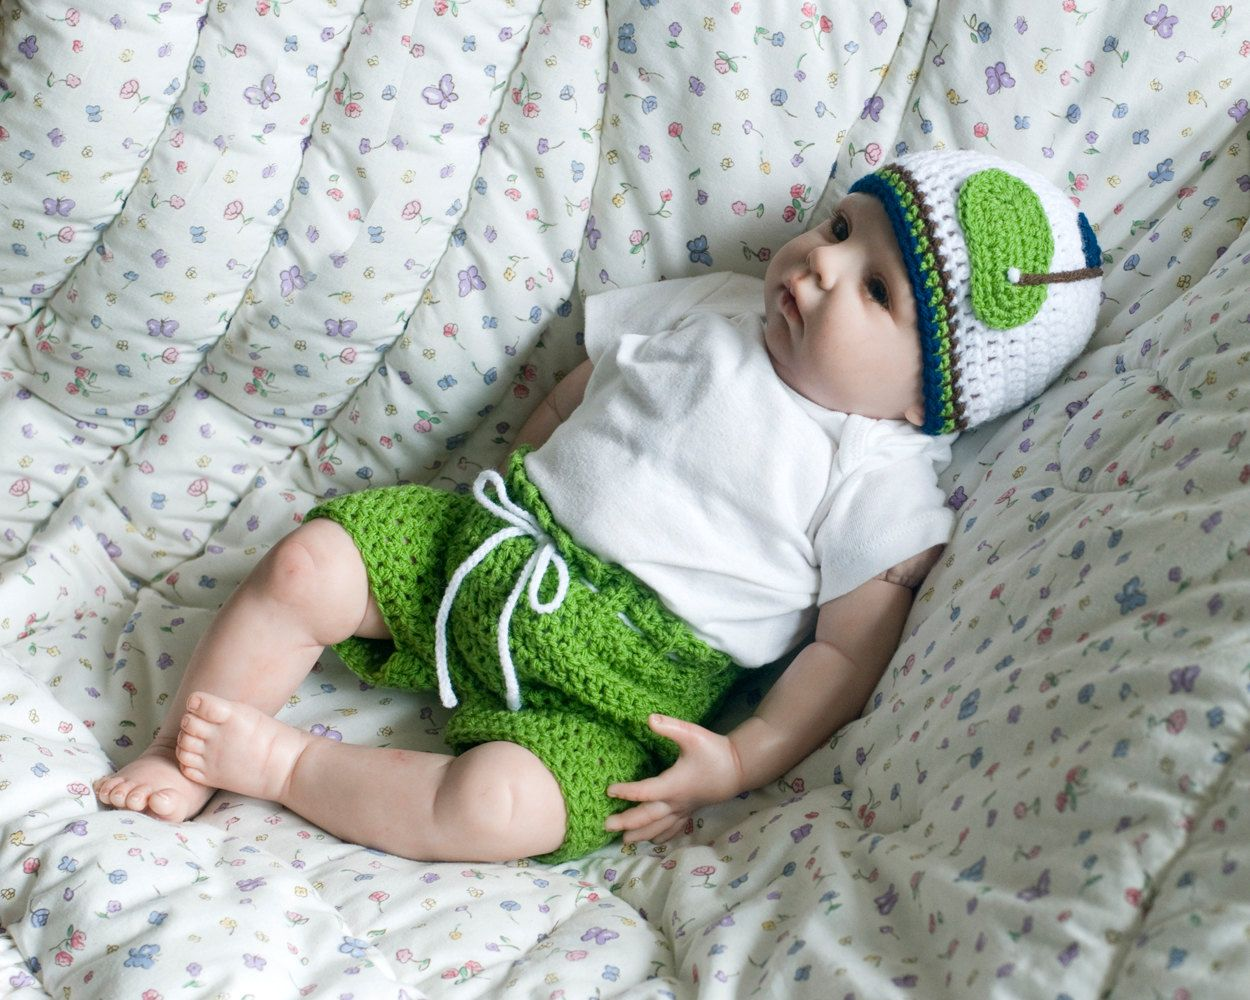 BABY GOLF Hat & Golf Shorts, Crochet Baby Golf Outfit, Crocheted ...